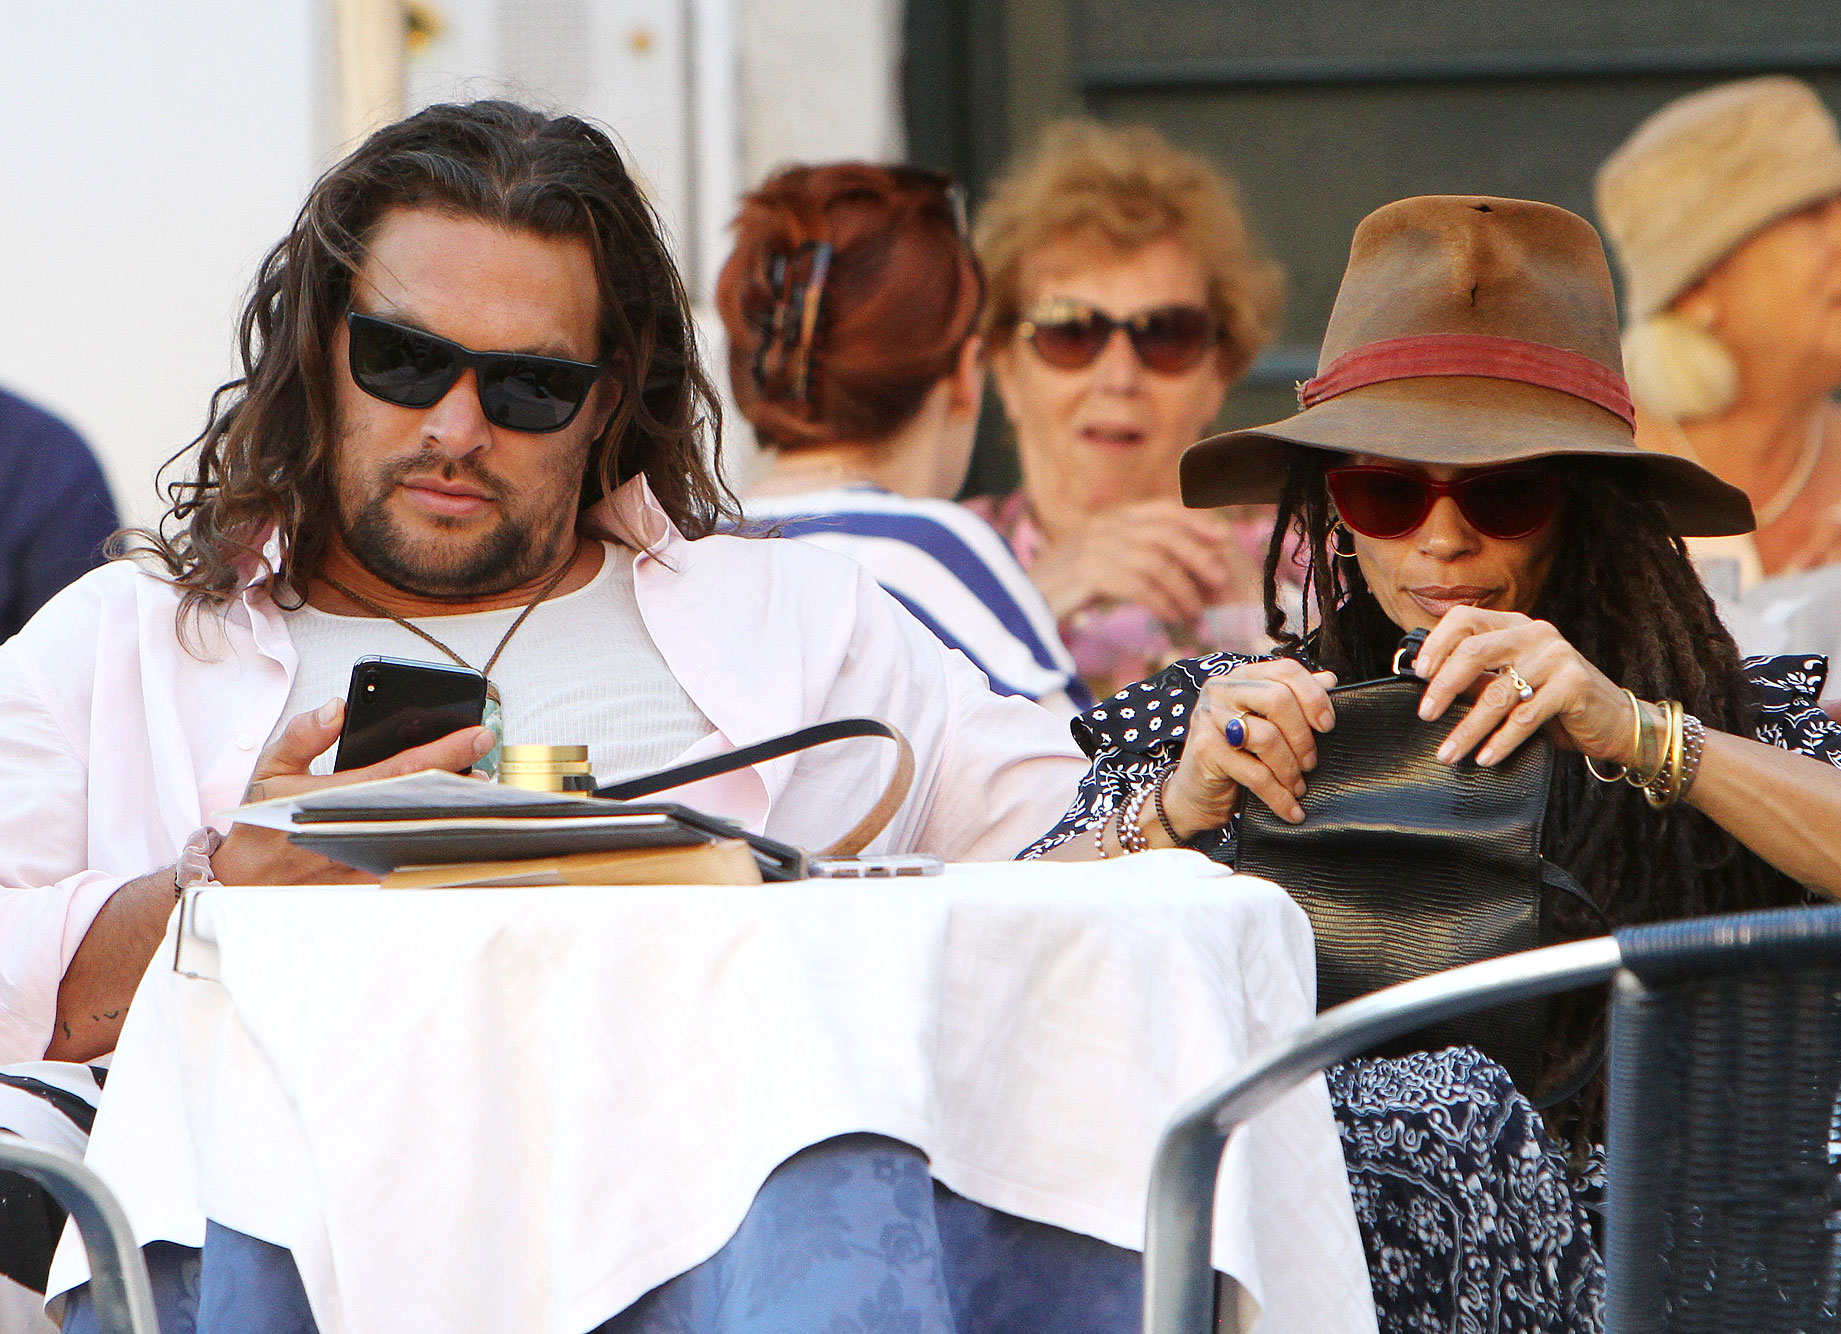 Jason Momoa and Lisa Bonet Explore Italy - EXCLUSIVE: Jason Momoa spotted strolling in Venice with wife Lisa Bonet and their kids ***SPECIAL INSTRUCTIONS*** Please pixelate children's faces before publication. ***.